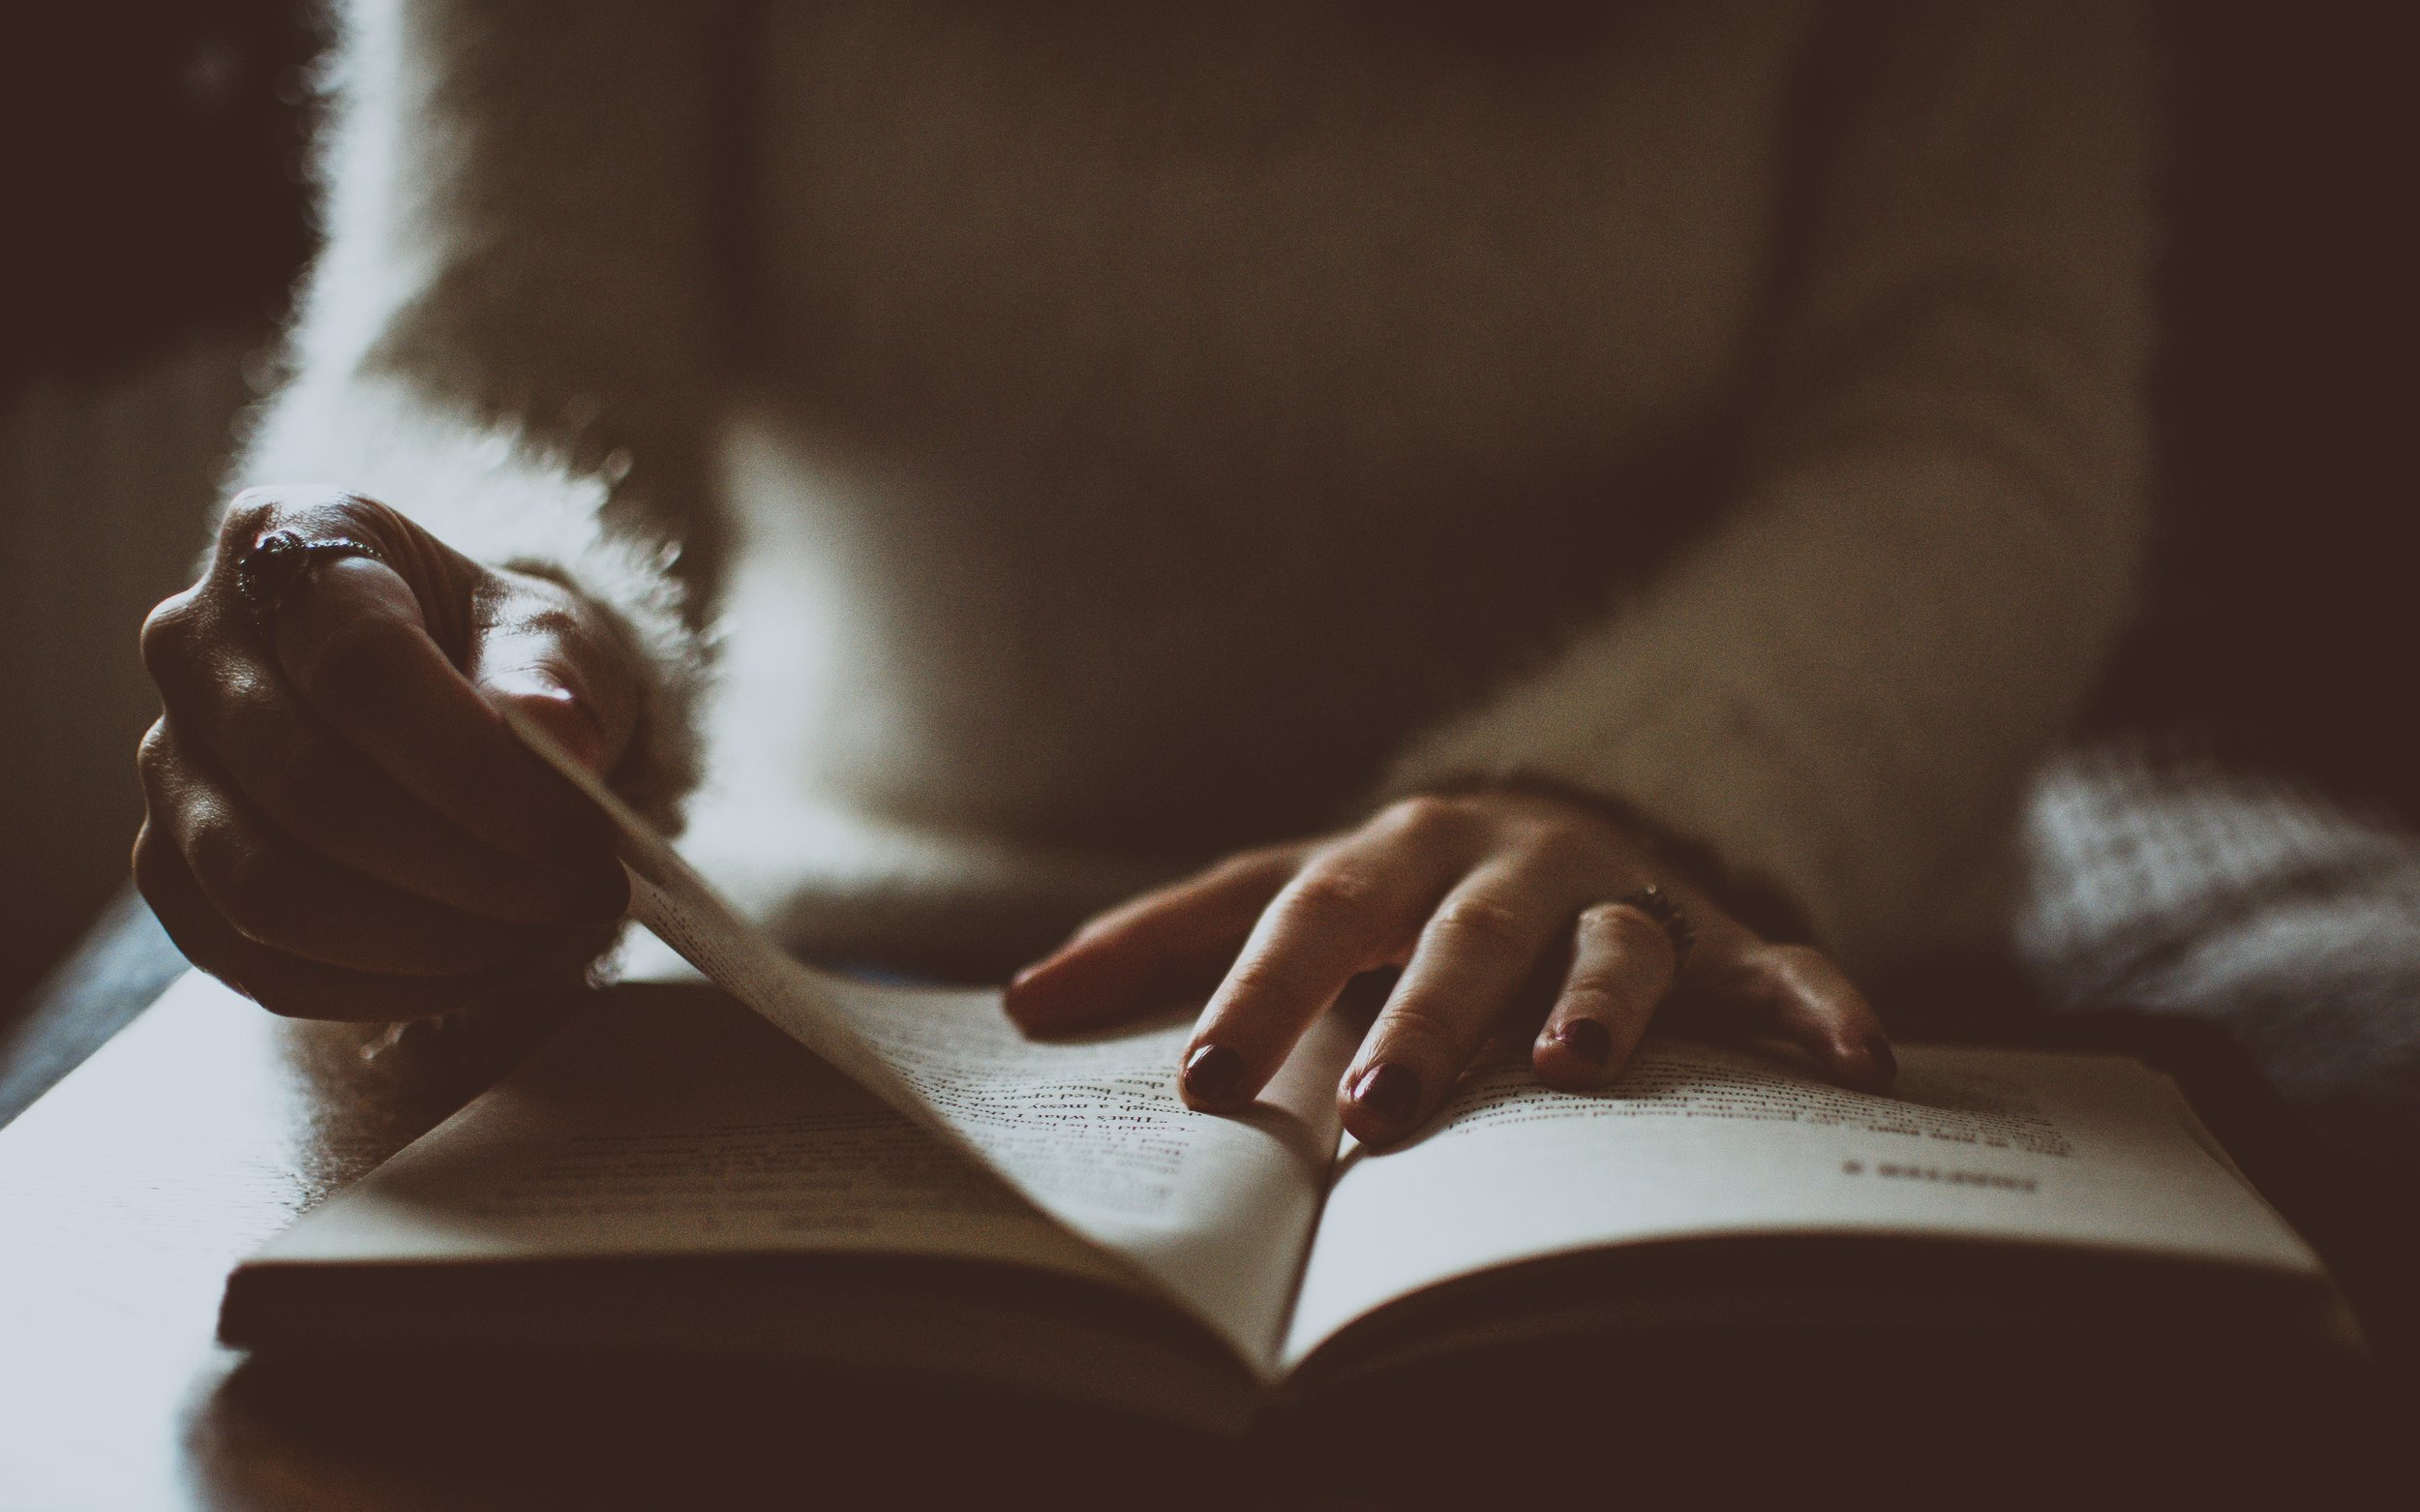 blur-book-pages-depth-of-field-1750566.jpg